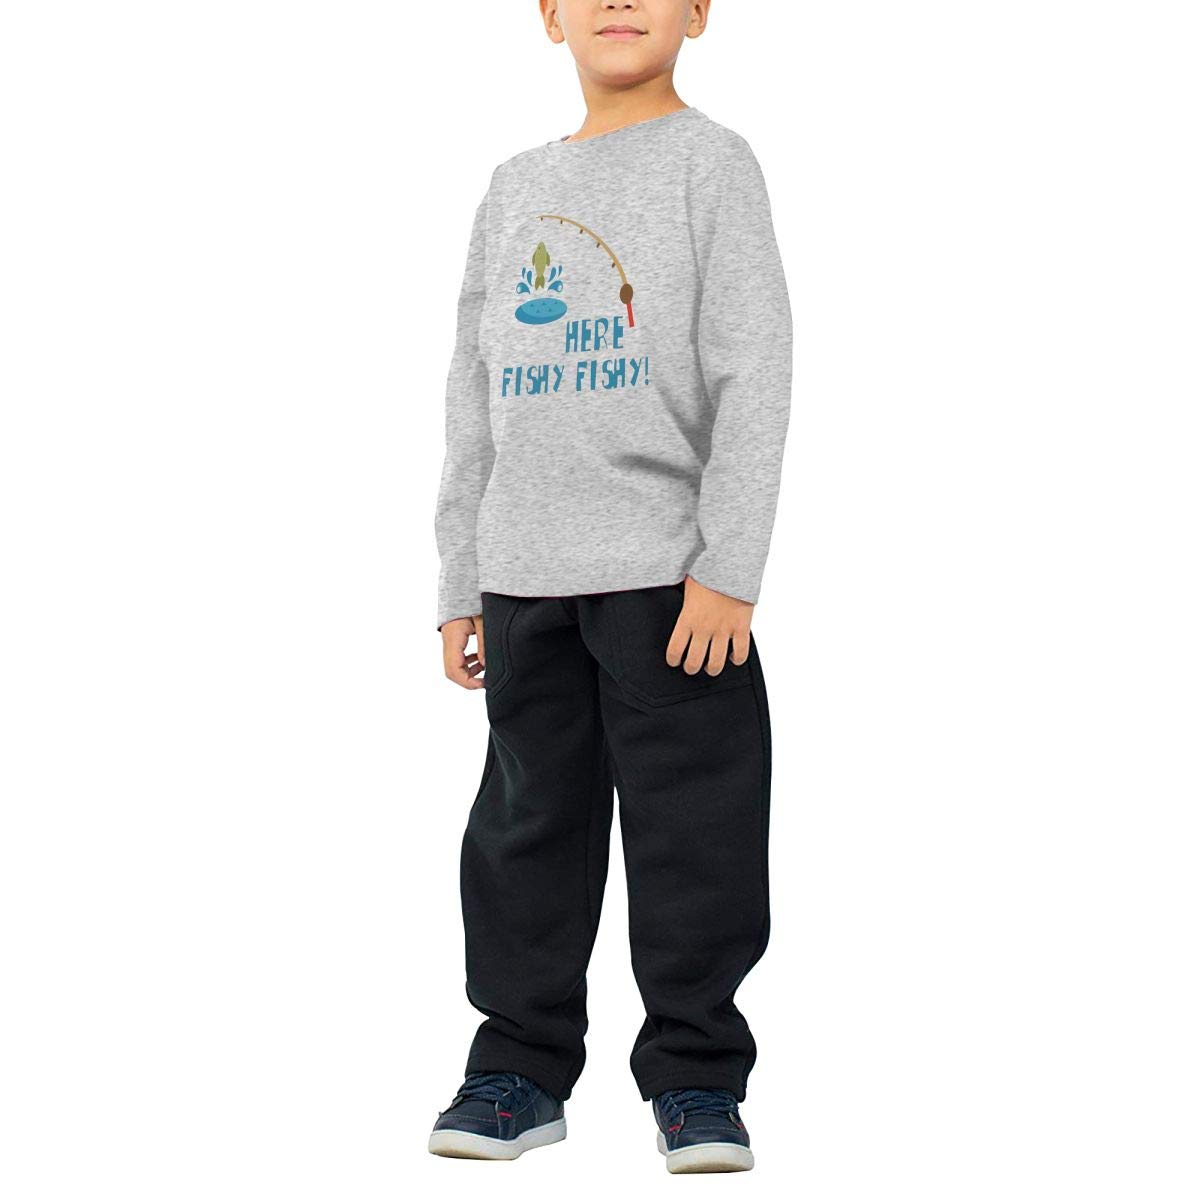 Patricia FordT 2-6 Year Old Childrens Long Sleeve T-Shirt Childrens Long Sleeve T Winter Loose Here Fishy Fishy Logo Gray